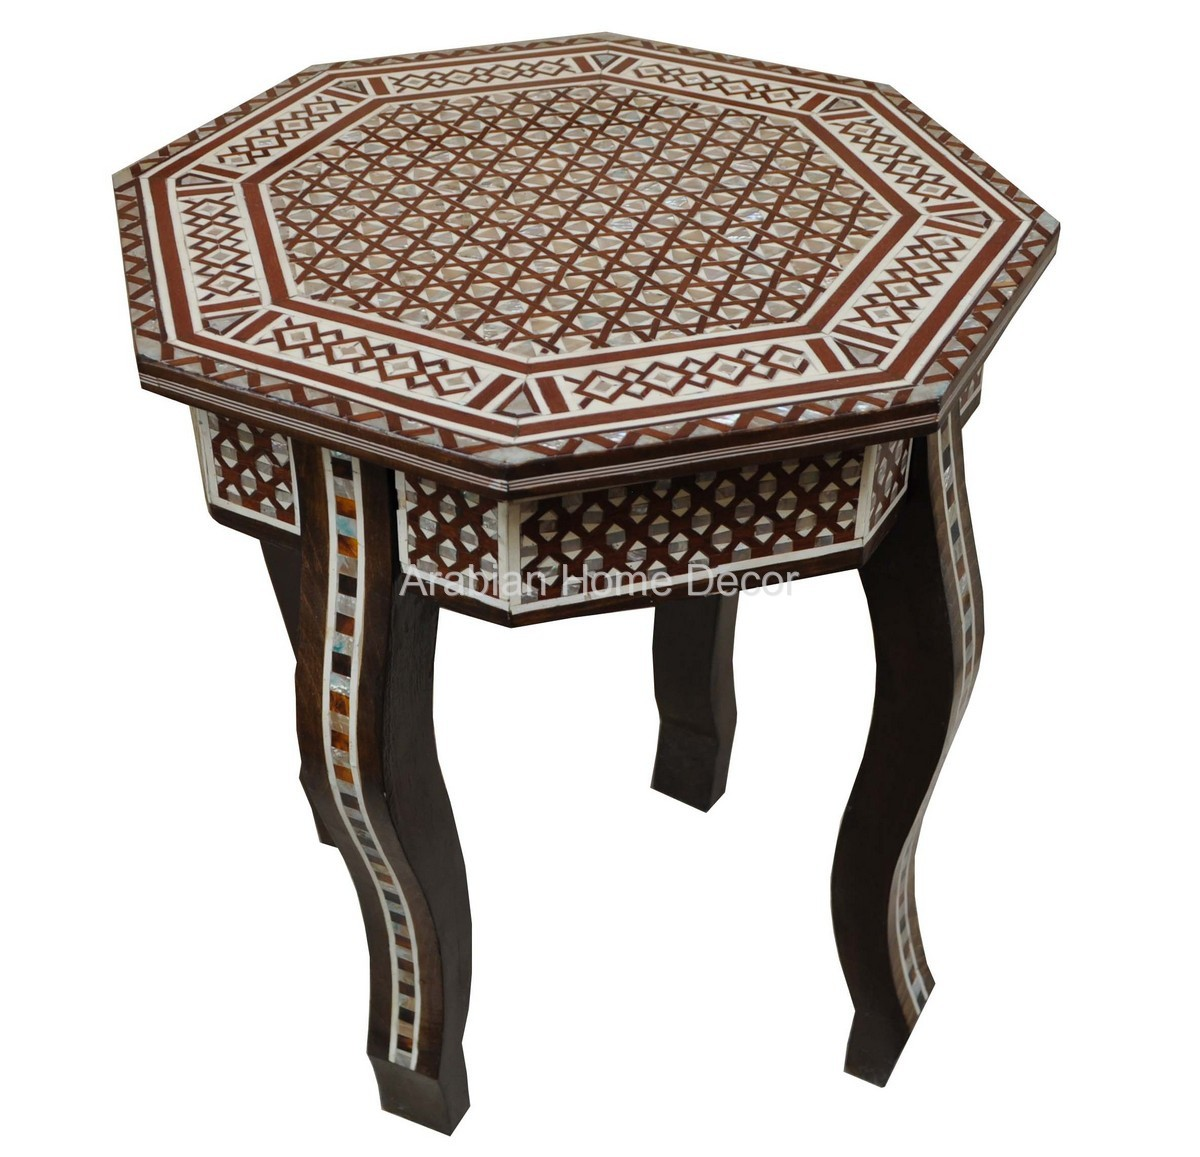 egyptian moroccan mother of pearl inlay octagonal wood side coffee table ebay. Black Bedroom Furniture Sets. Home Design Ideas